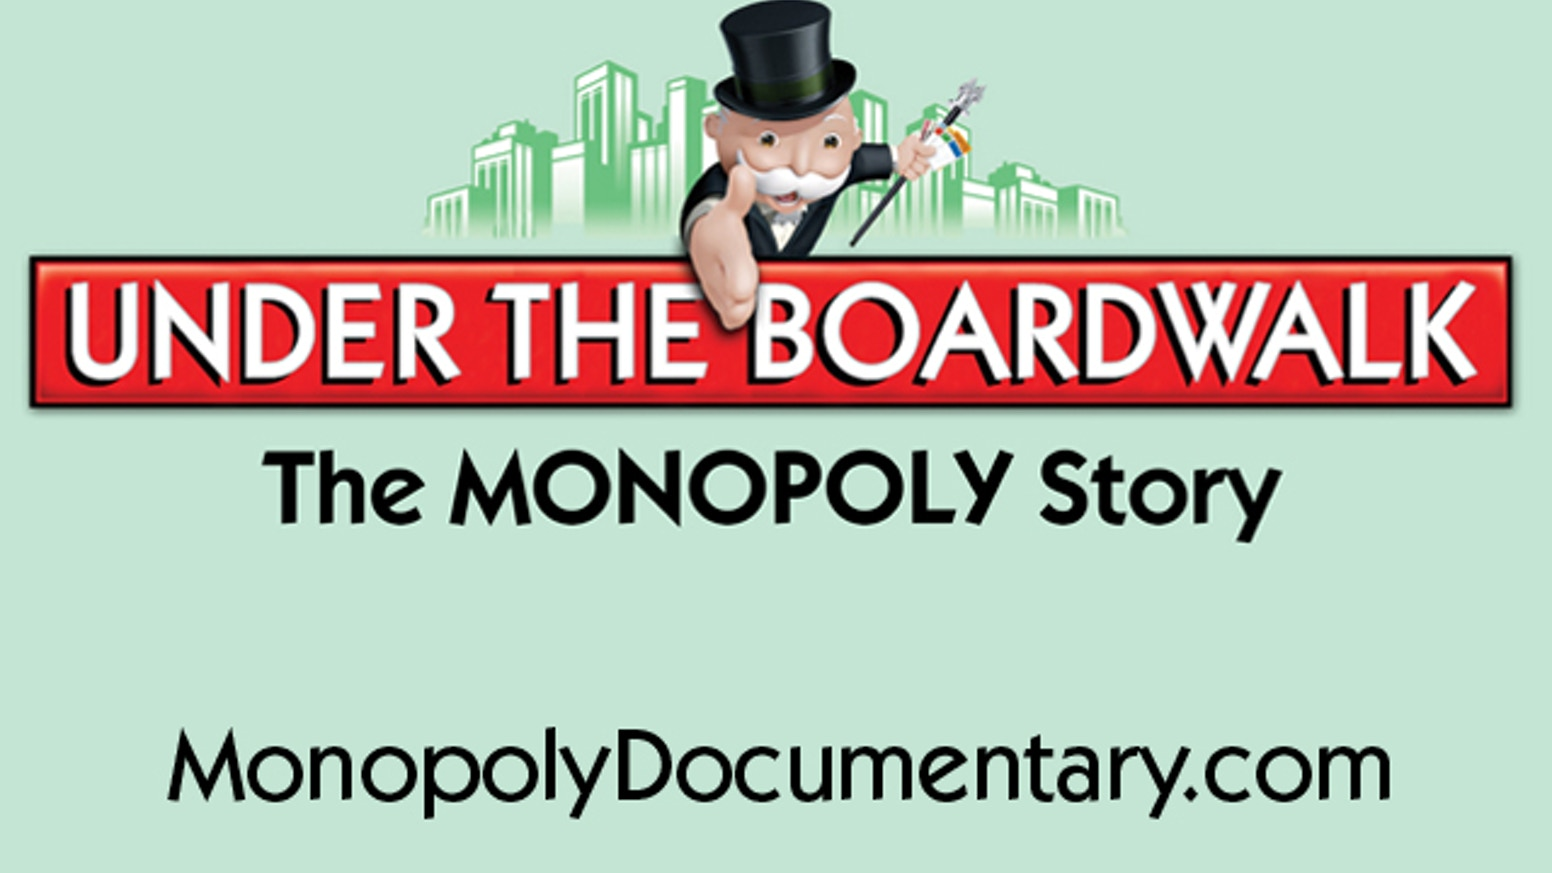 This film is an Emmy award-winning documentary about the world's most famous board game. Now available on Amazon, iTunes, Google Play Store, & Hulu.